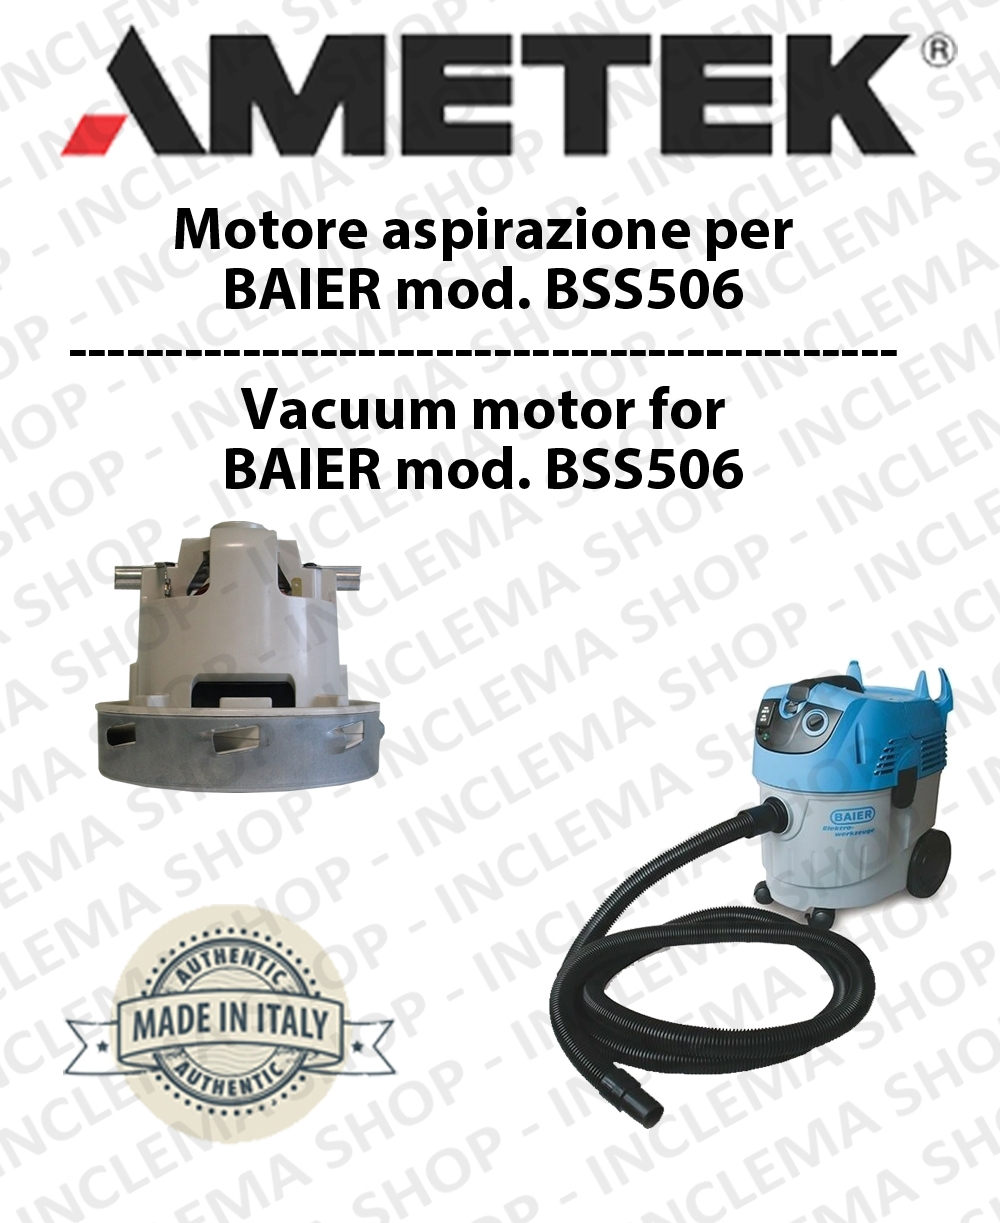 BSS506 Ametek Vacuum Motor for vacuum cleaner wet and dry BAIER